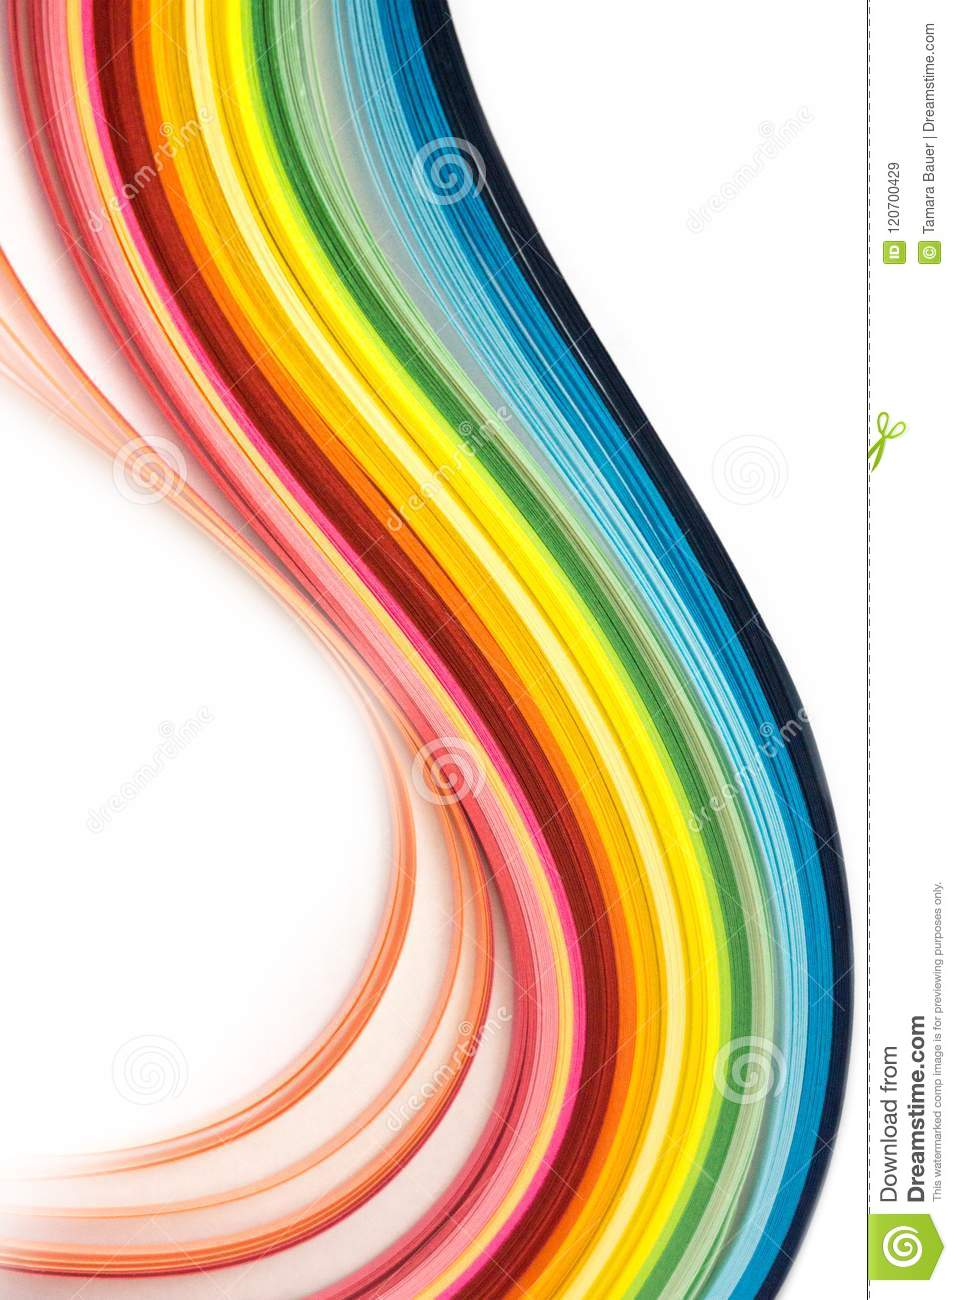 Rainbow Quilling Paper Strips Stock Image Image Of Paper Quilling